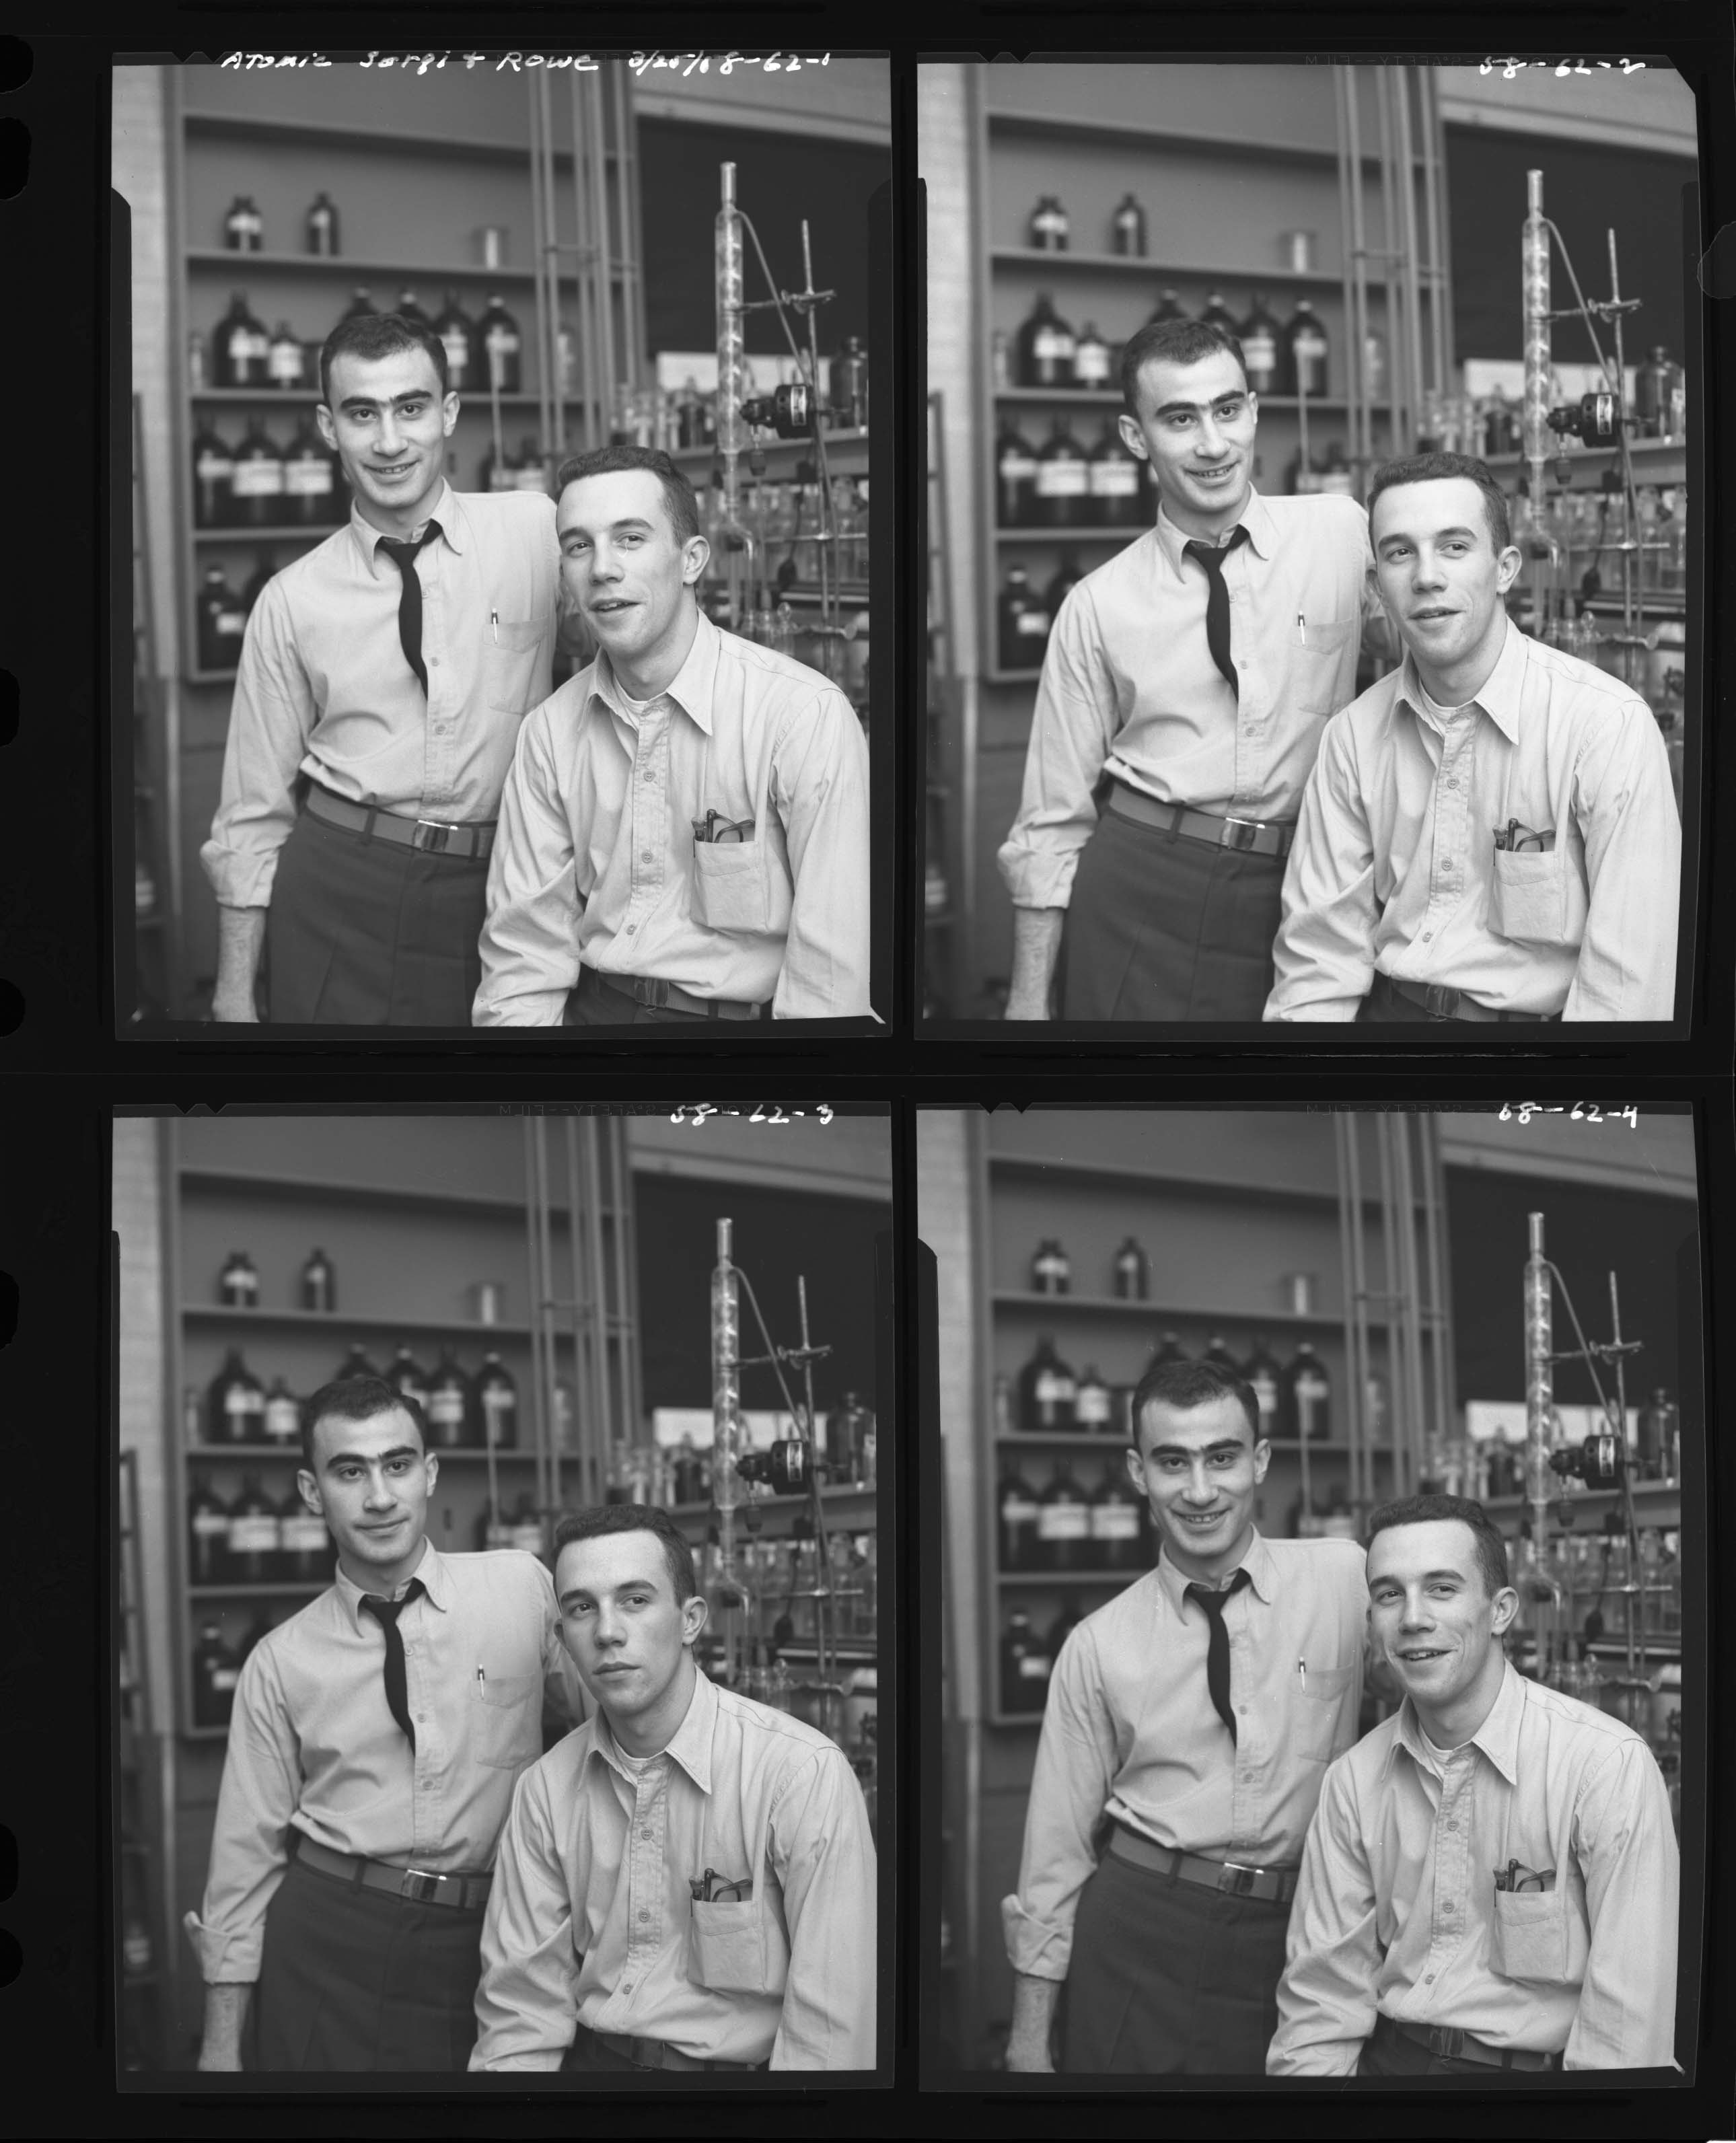 Four frames of two men posing in a science classroom